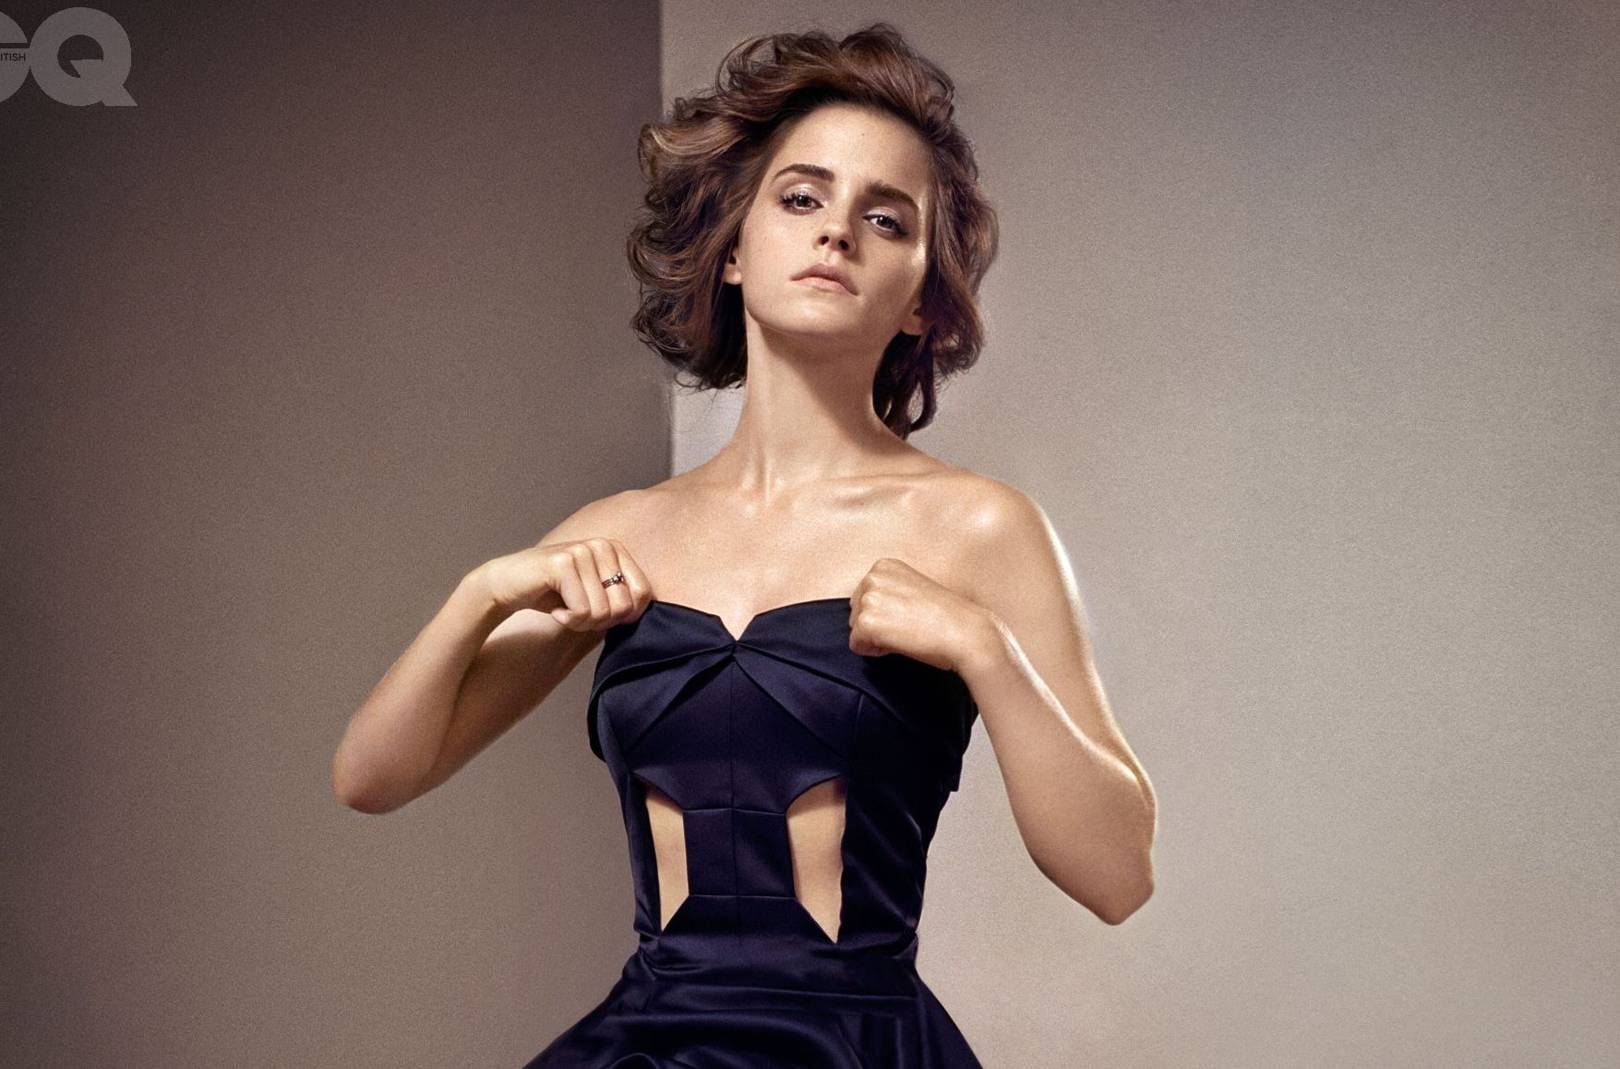 emma watson, gq woman of the year 2013 | british gq